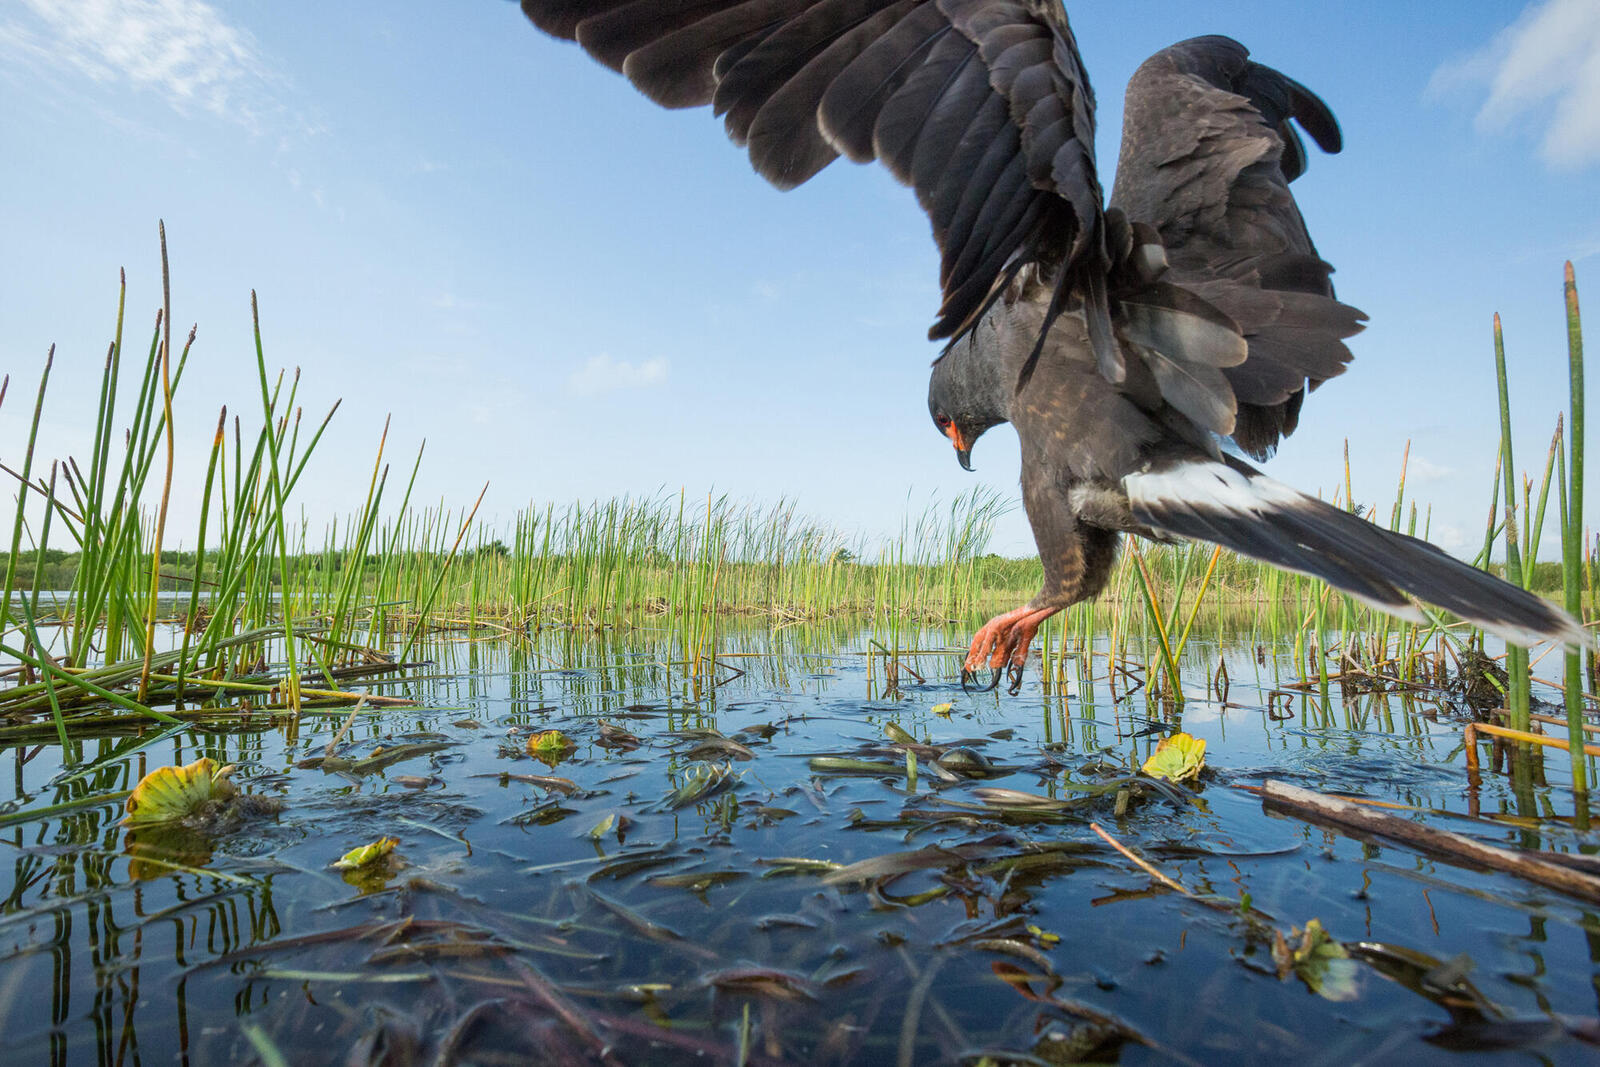 Snail kite over water